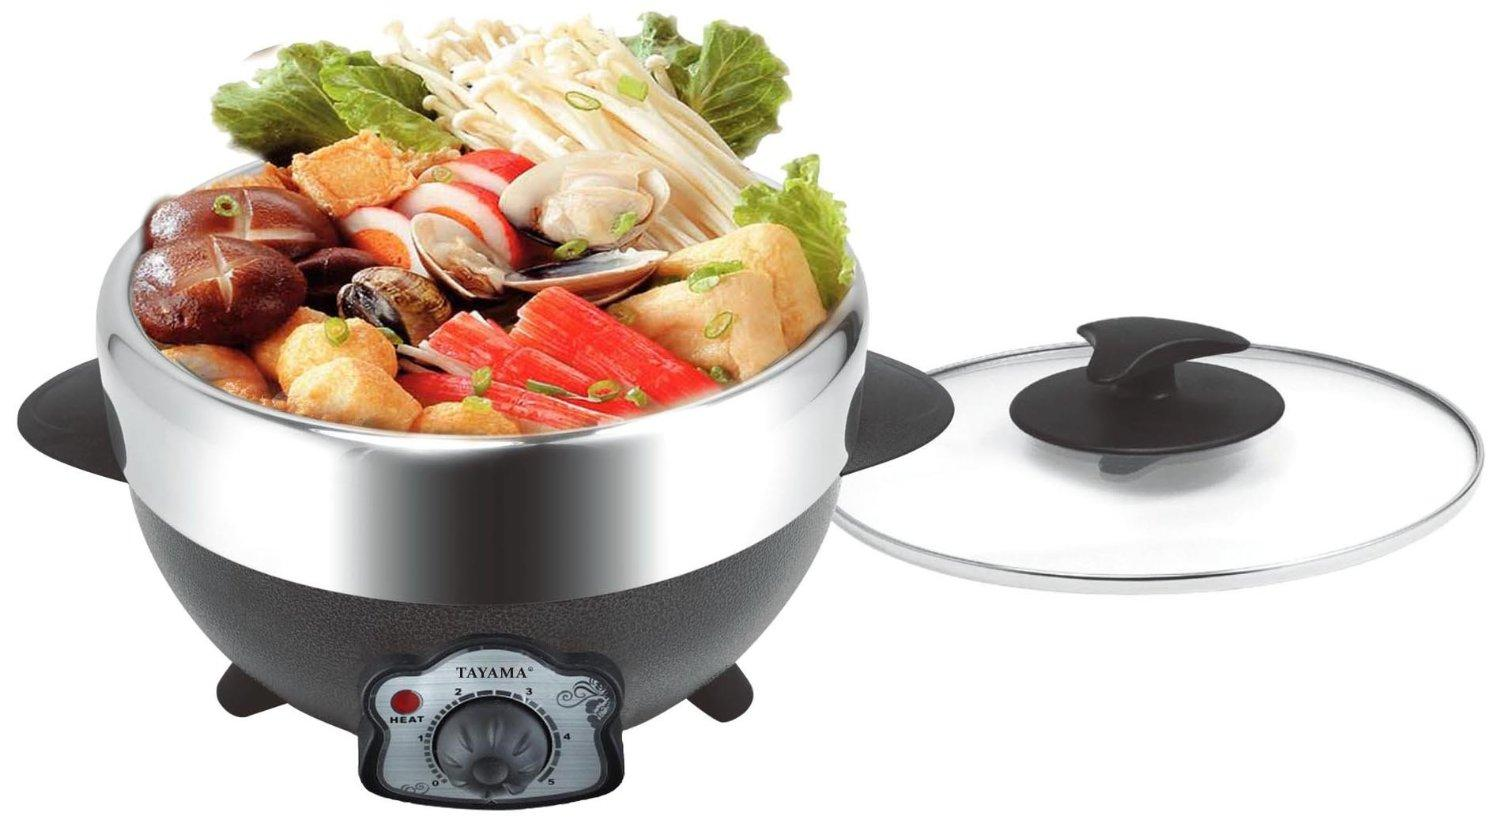 Tayama Electric Shabu and BBQ Grill with Pot, TRMC-22